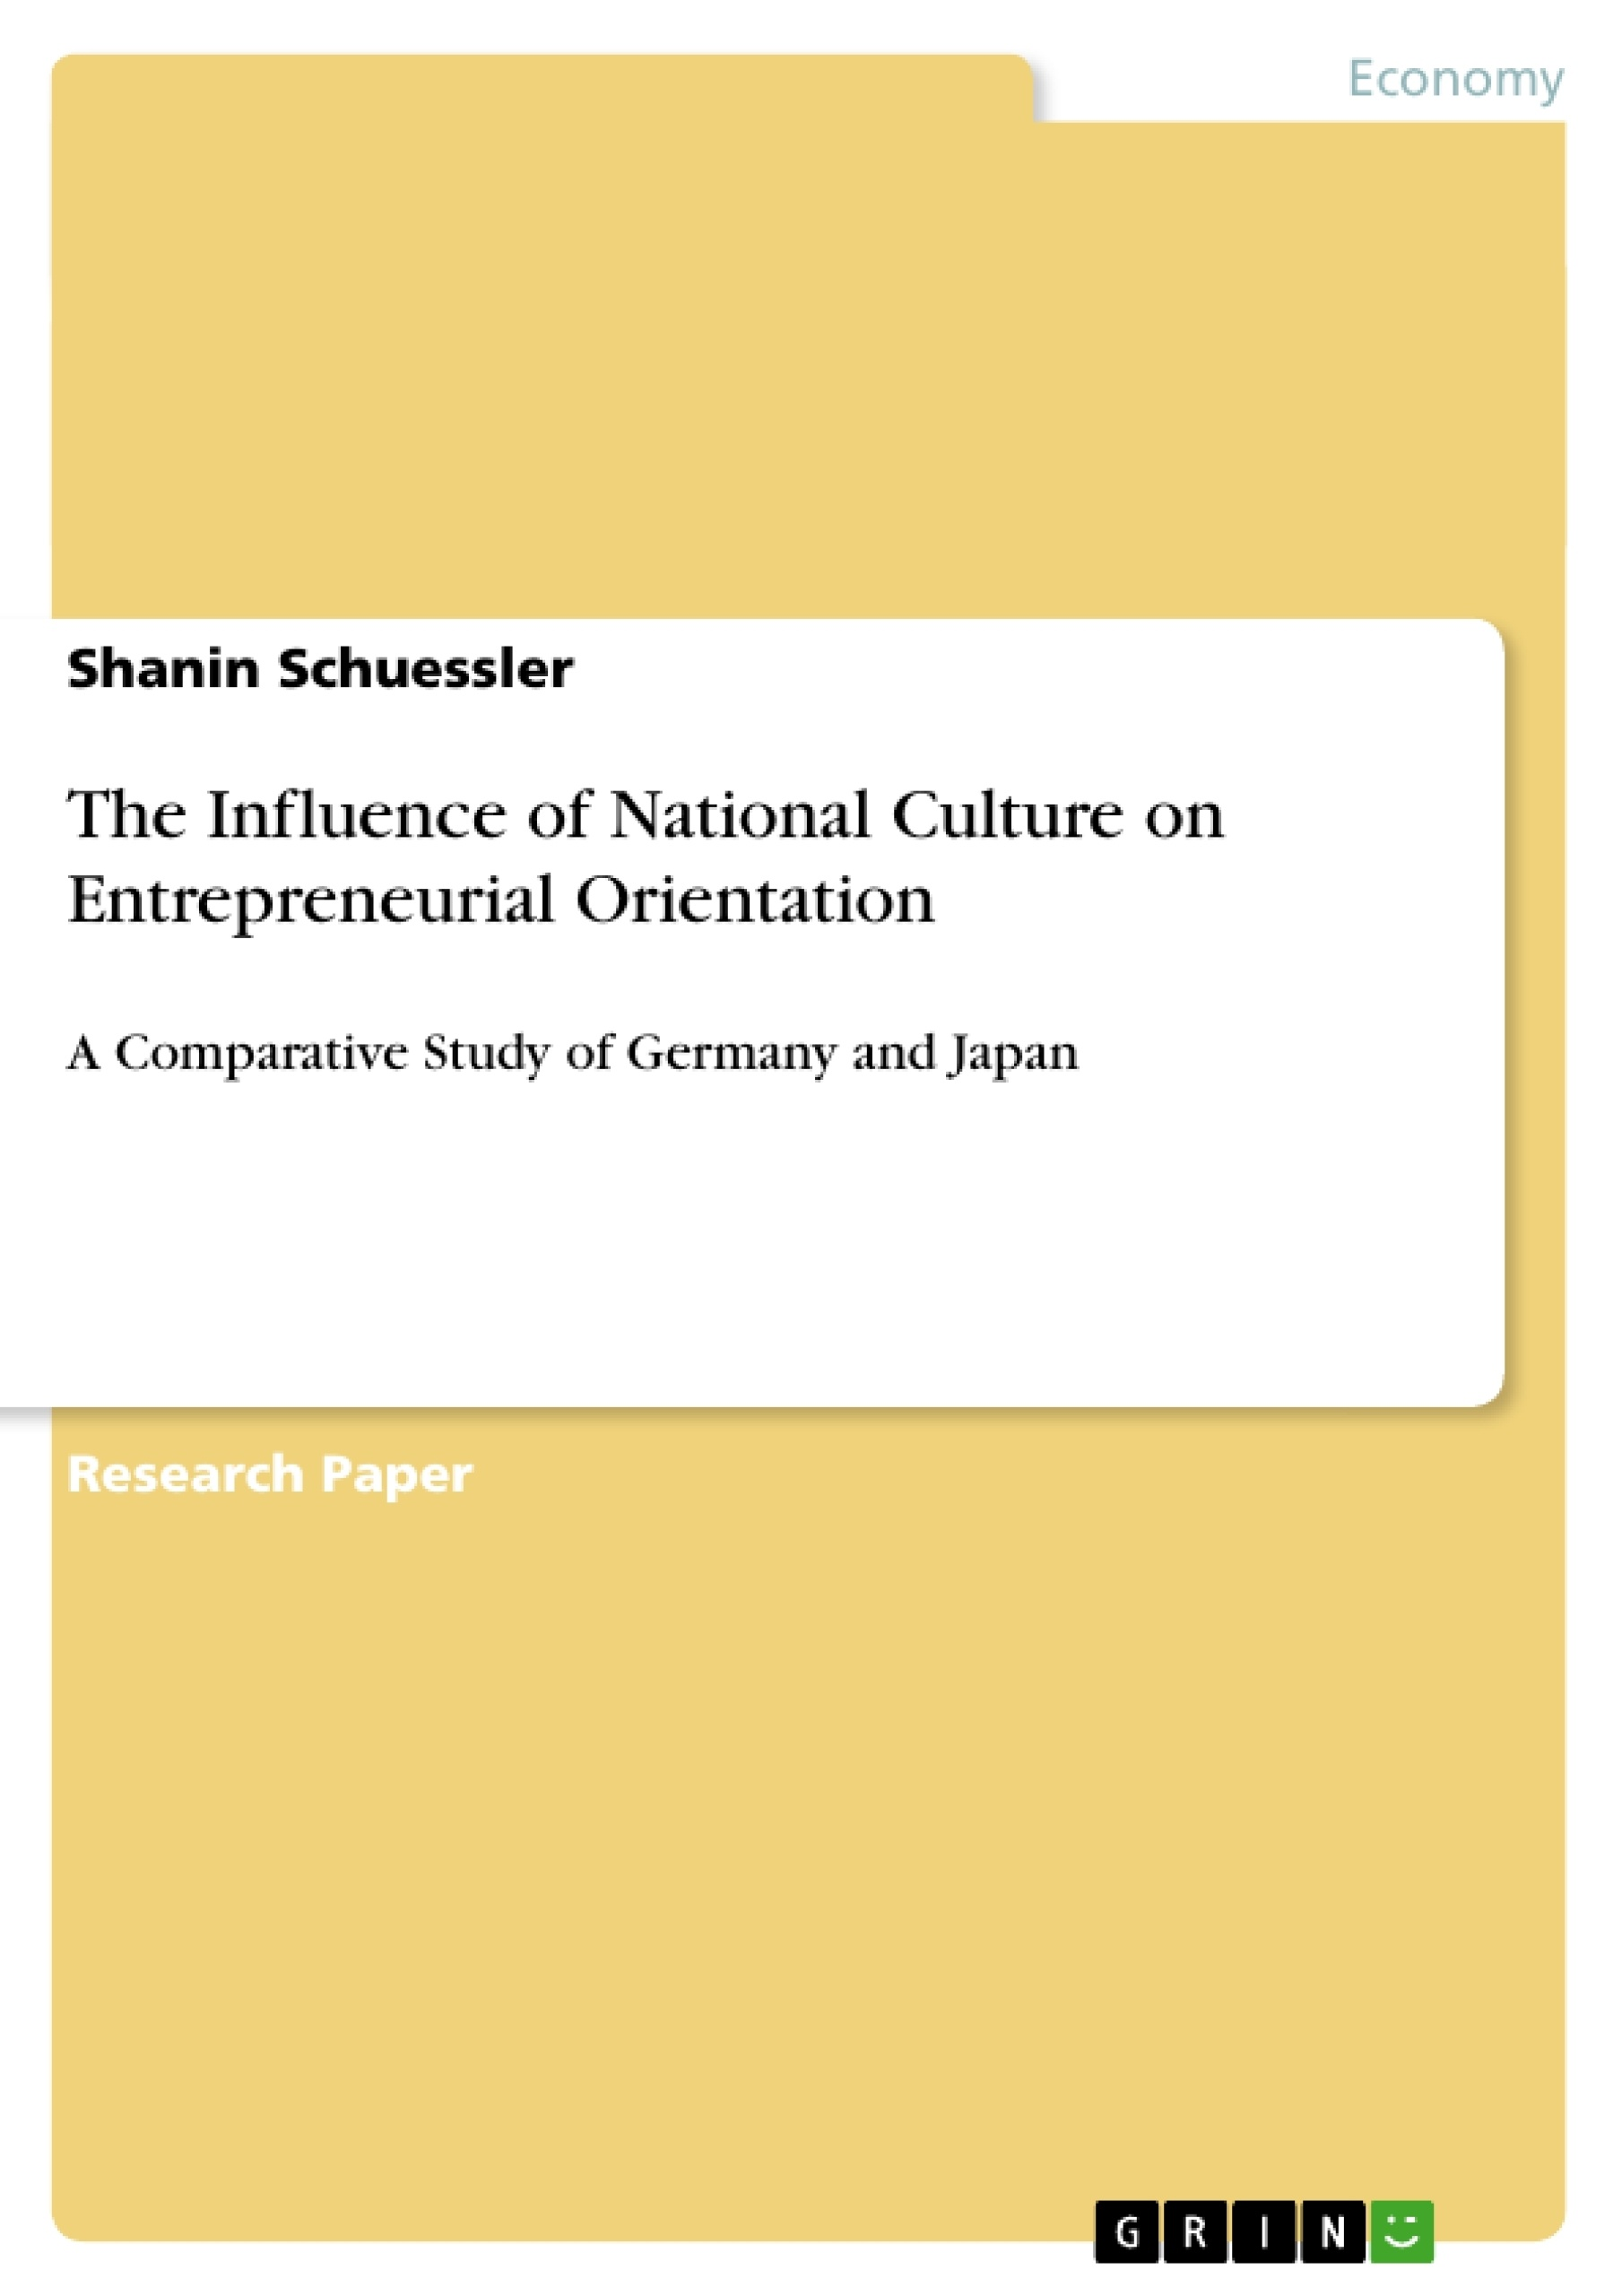 Title: The Influence of National Culture on Entrepreneurial Orientation